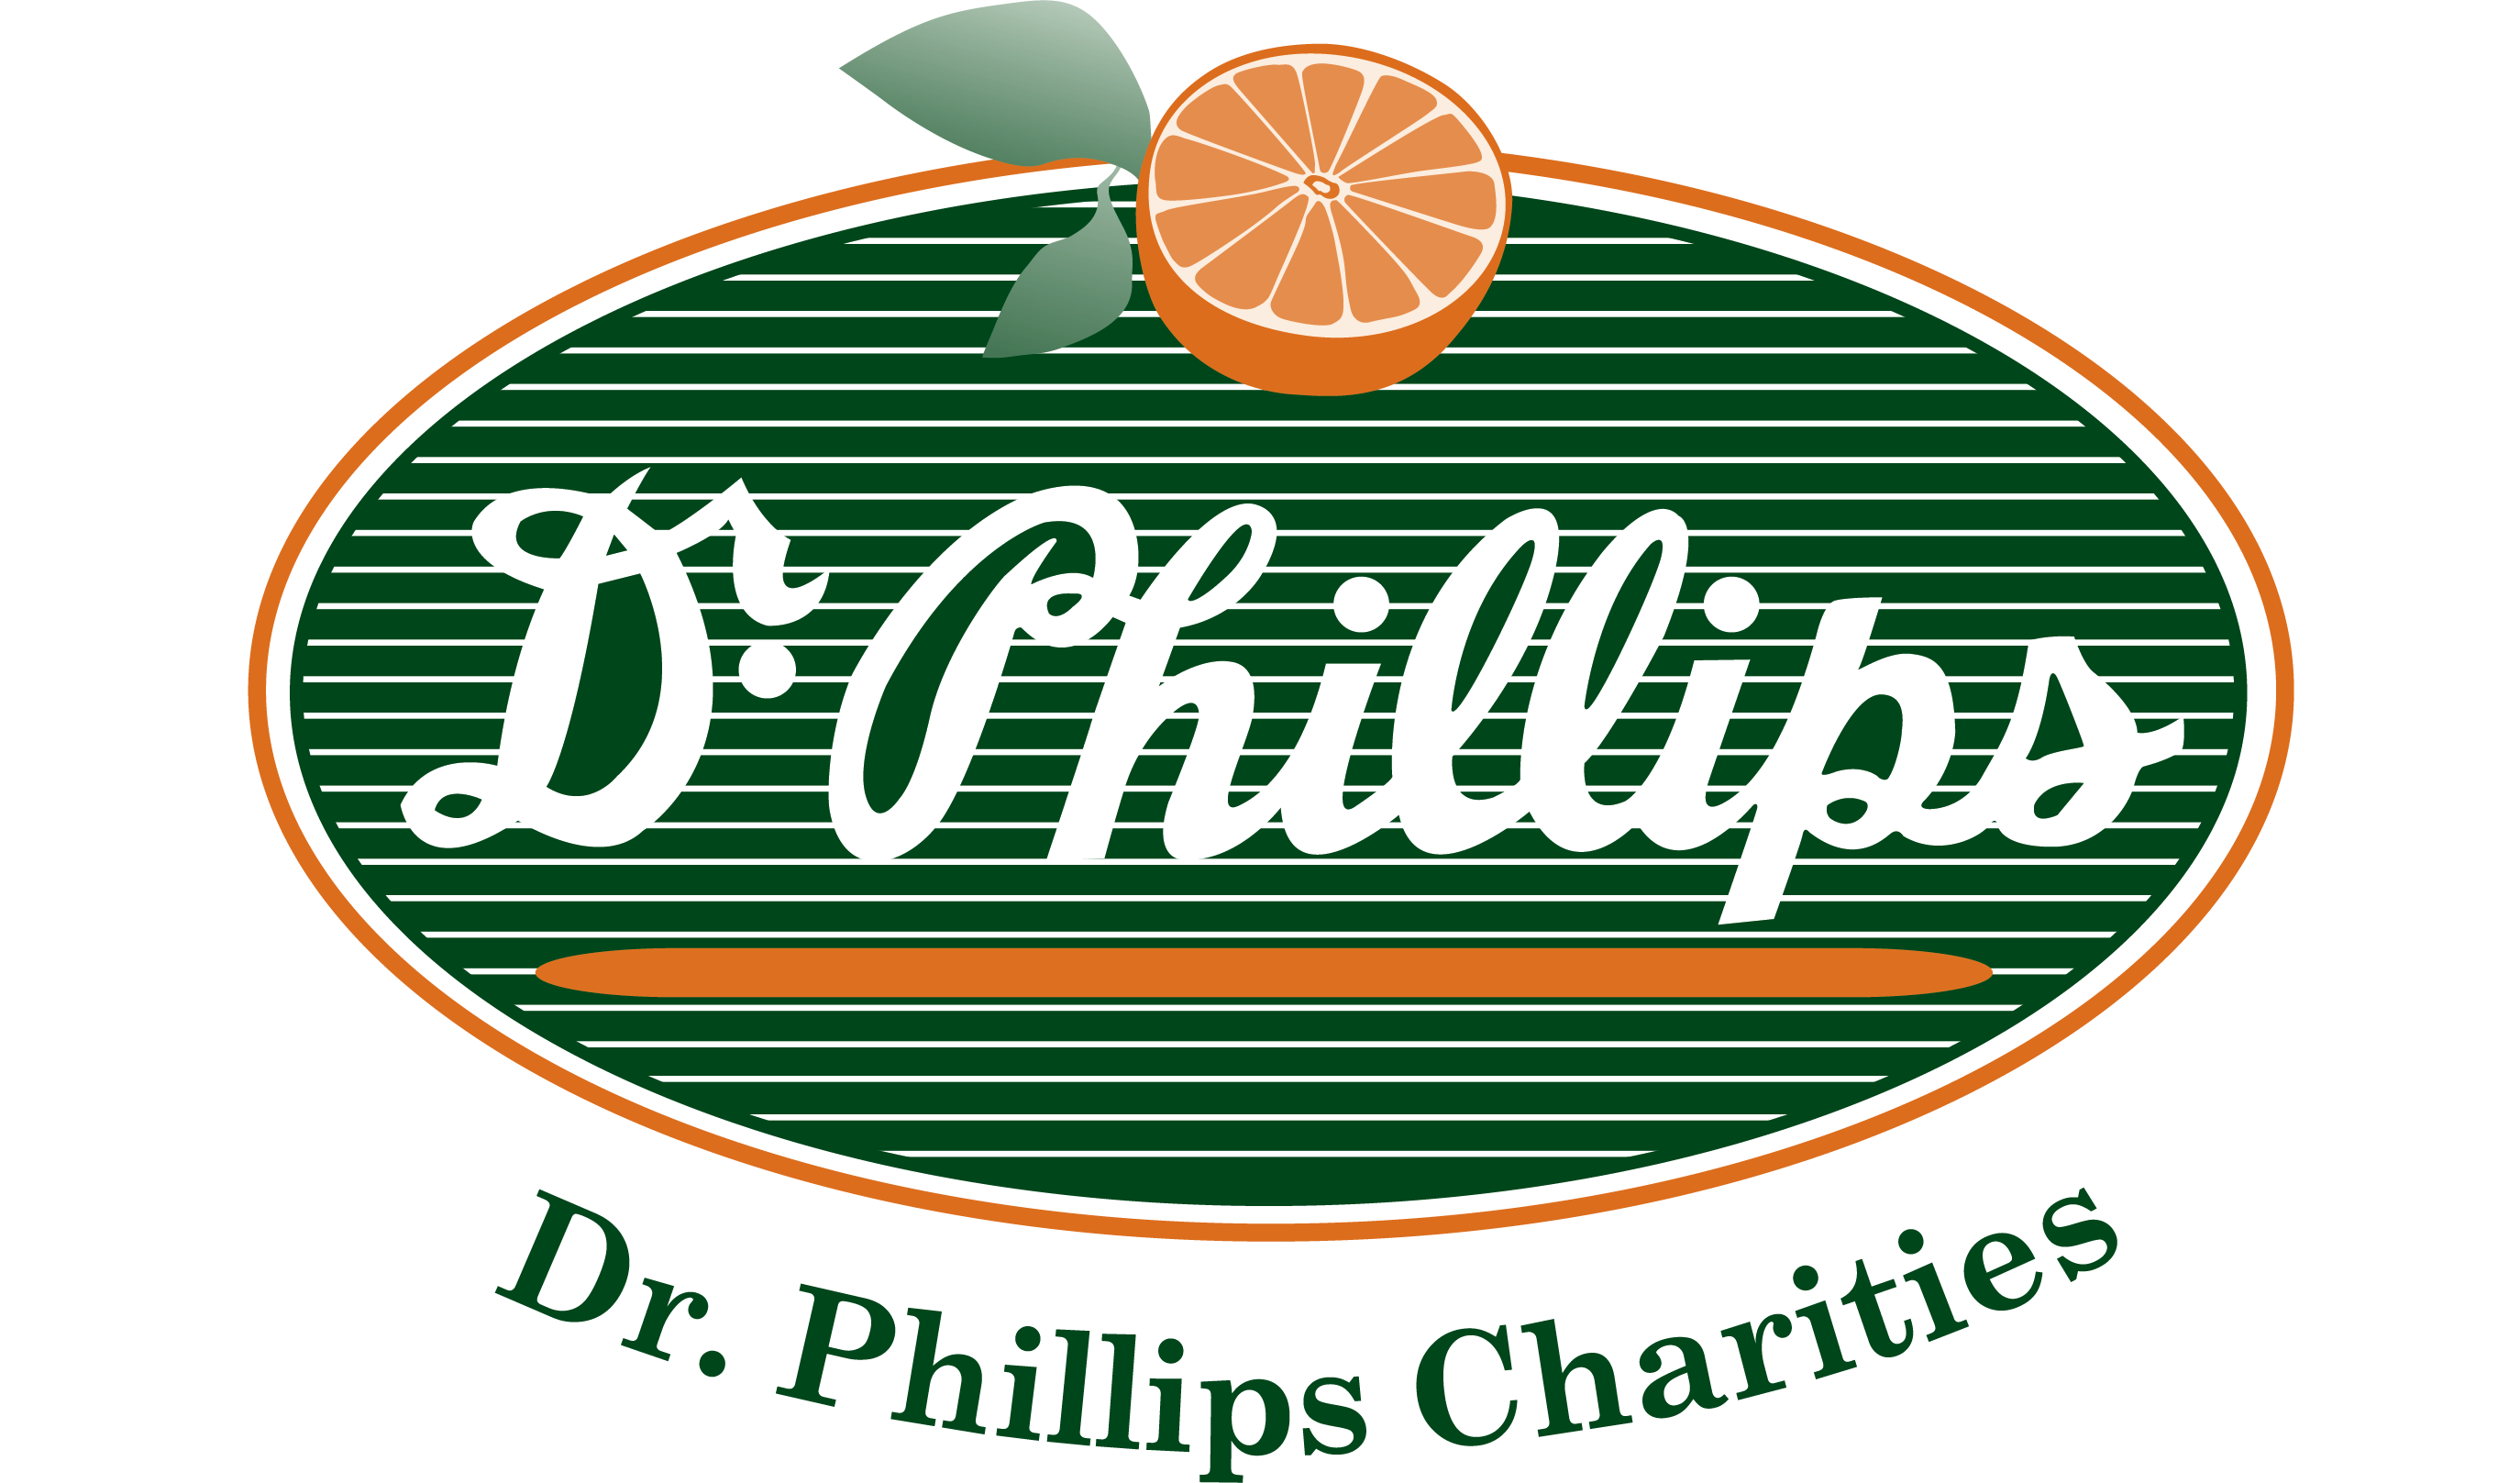 Celebrating the Impact of Dr. Phillips Charities in the Time of COVID-19